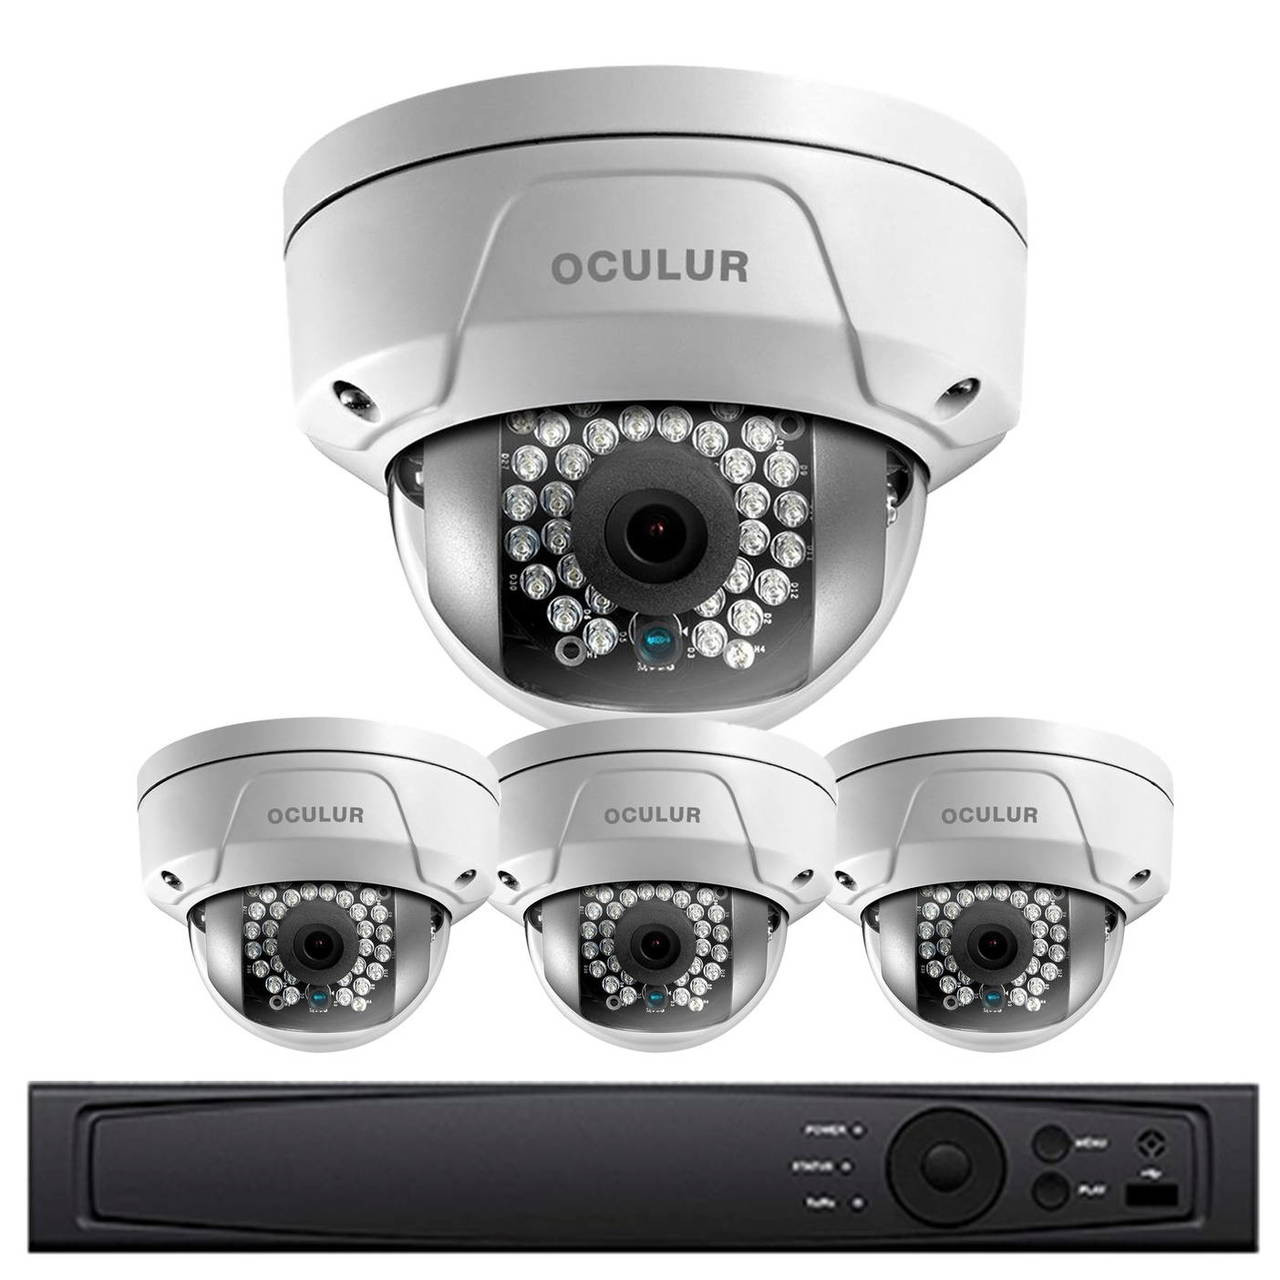 Oculur O4X2DFW4 Wireless Dome IP Security Camera System - 4 Camera, Outdoor,  Full HD 1080p, 1TB Storage, Night Vision